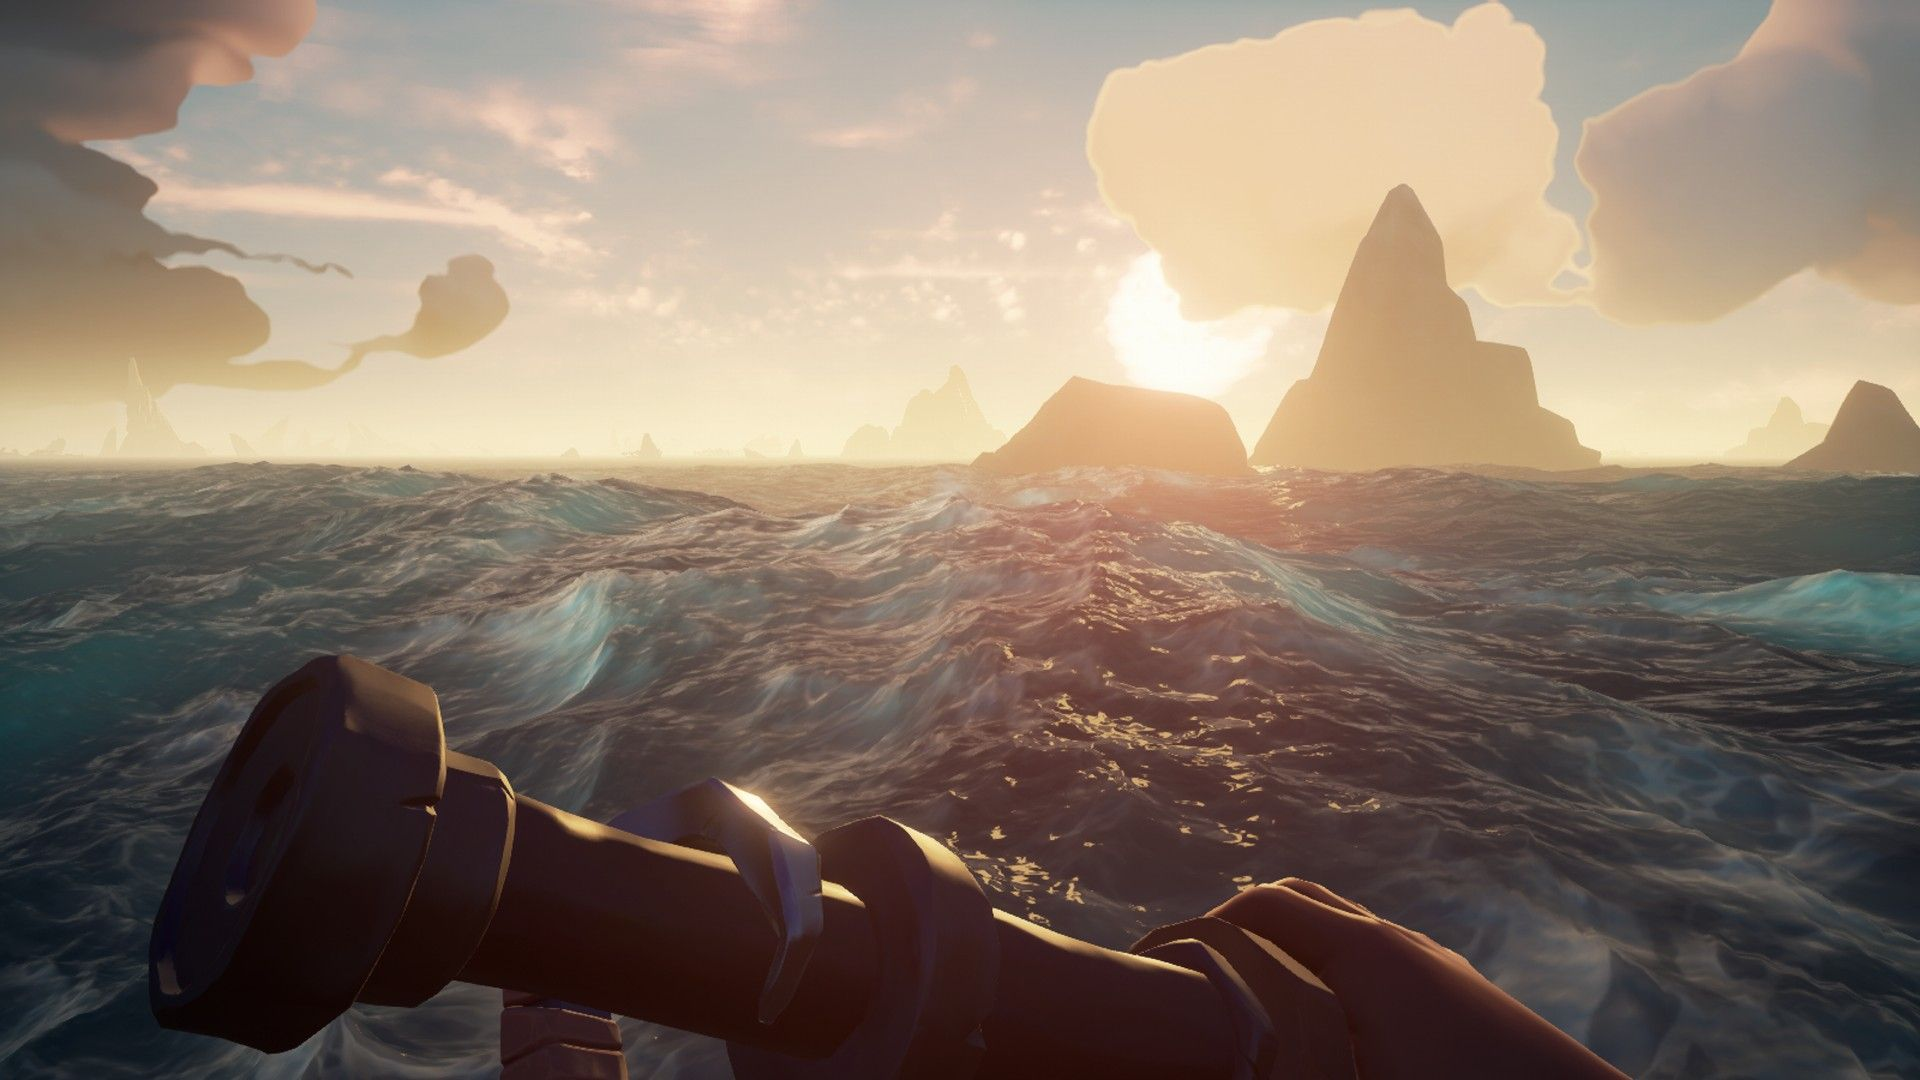 Pin By Baxmus Skywalker On Sea Of Thieves Sea Of Thieves Scenes